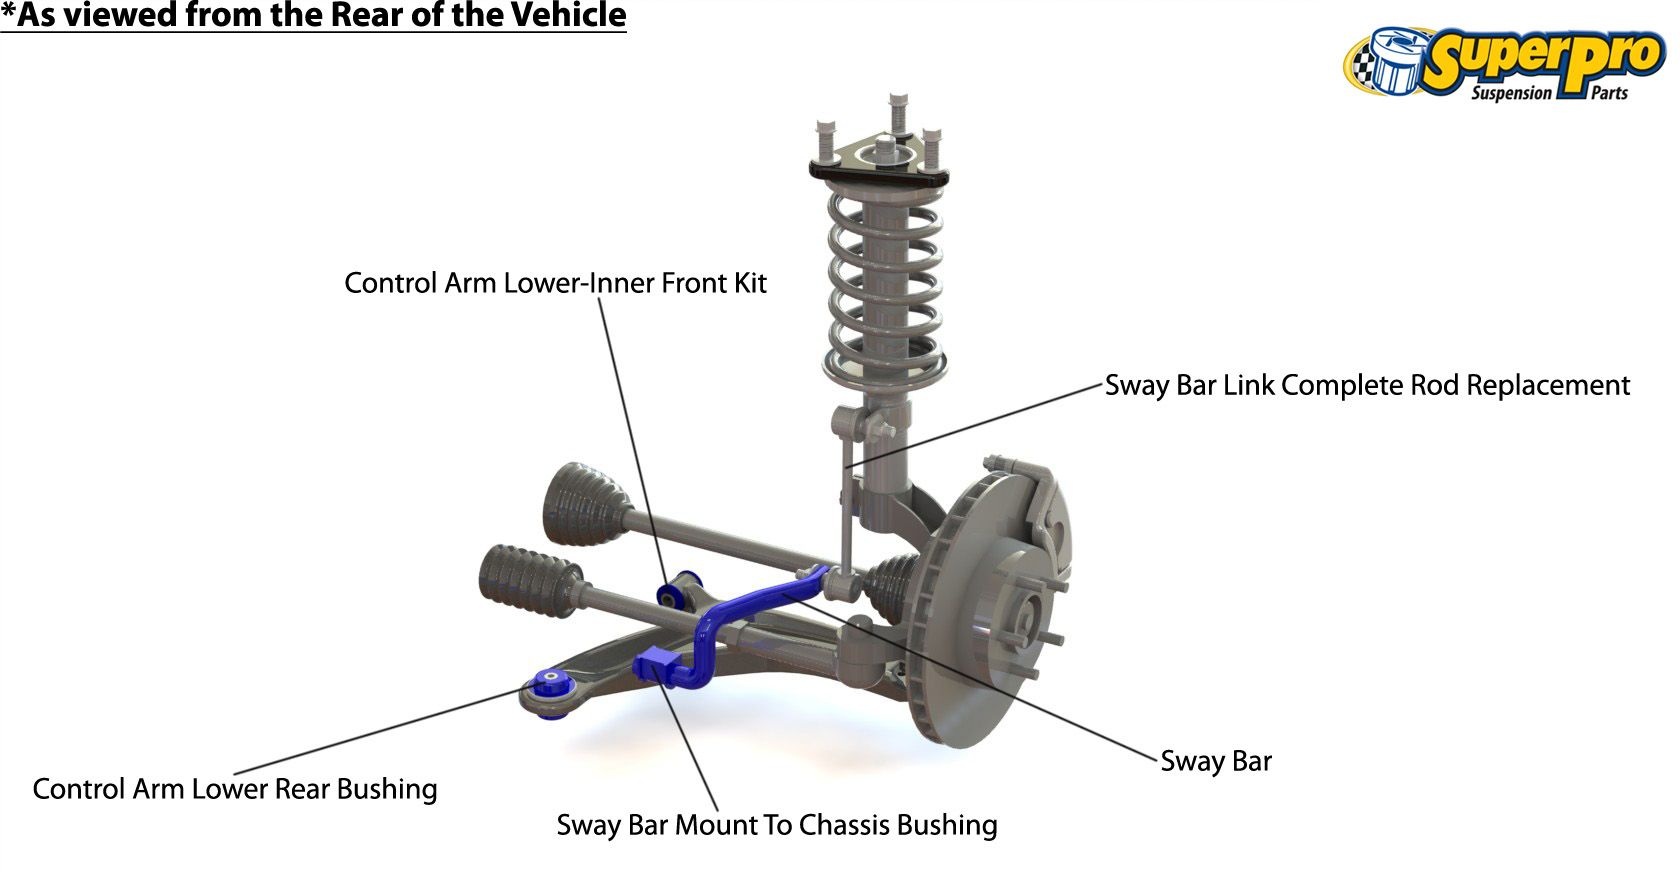 hight resolution of front suspension diagram for subaru impreza wrx sti gv 2007 2011